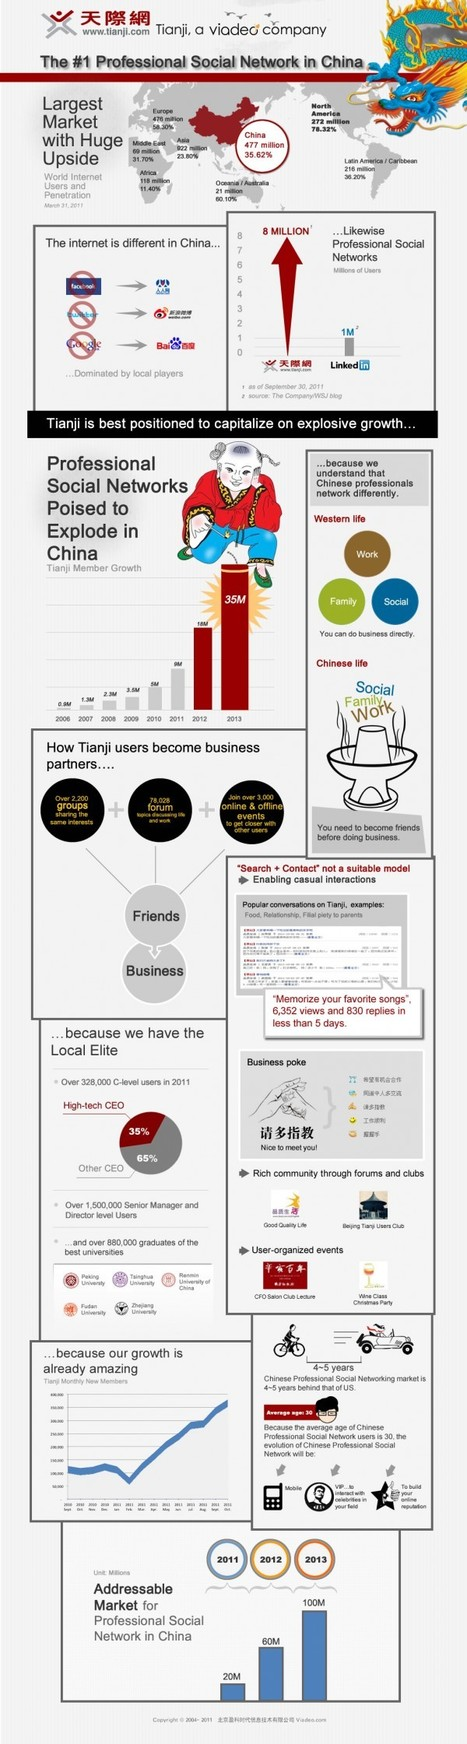 Business social networks tipped to grow 500% in China by 2013 [Infographic] | Be Innovative | Scoop.it